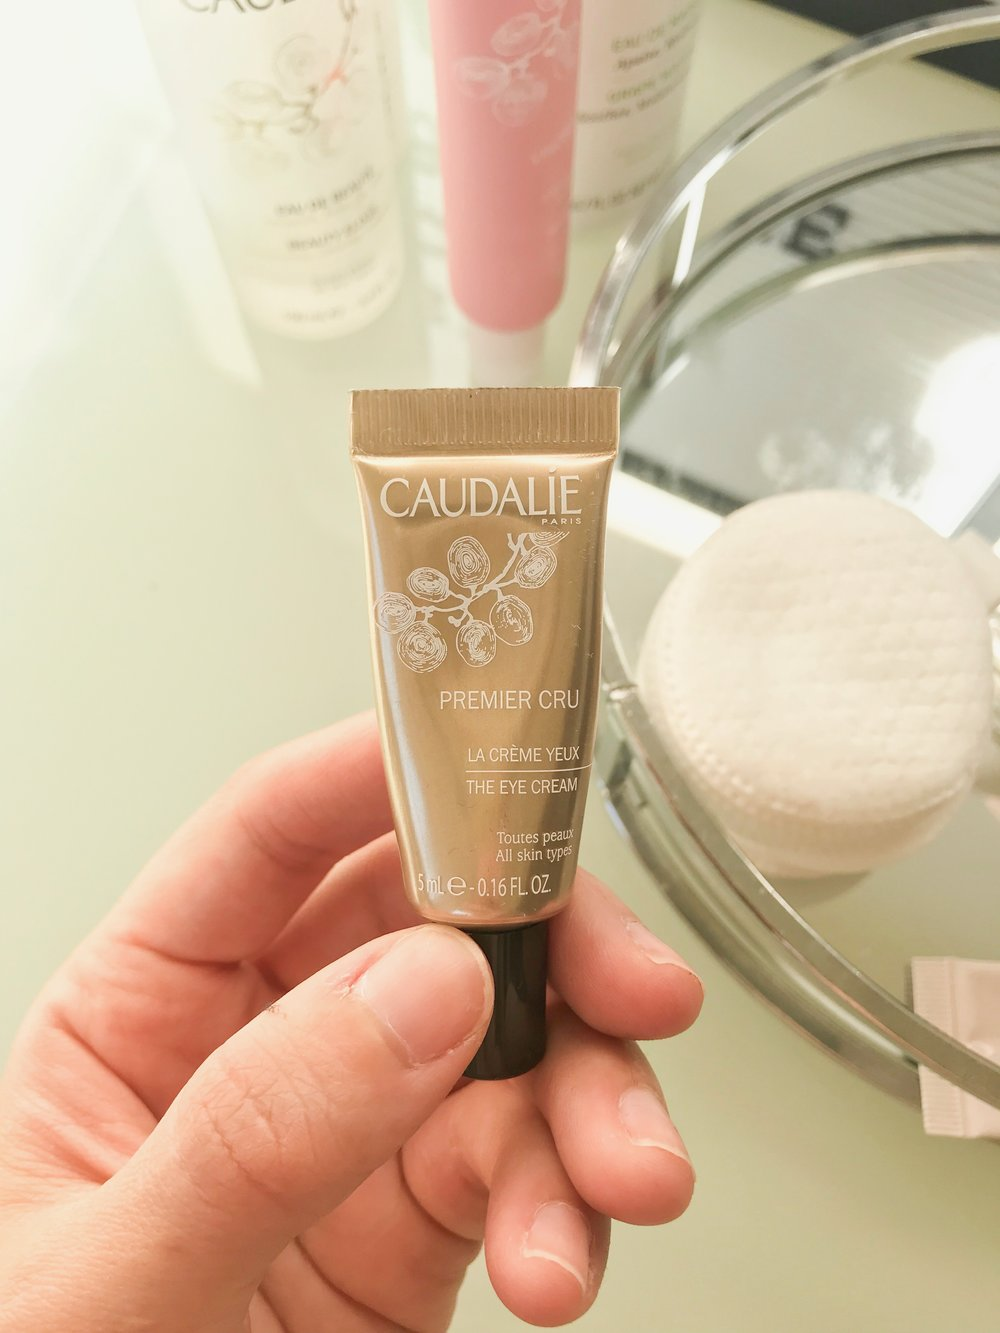 Caudalie Premier Cru - $99  (sample shown)